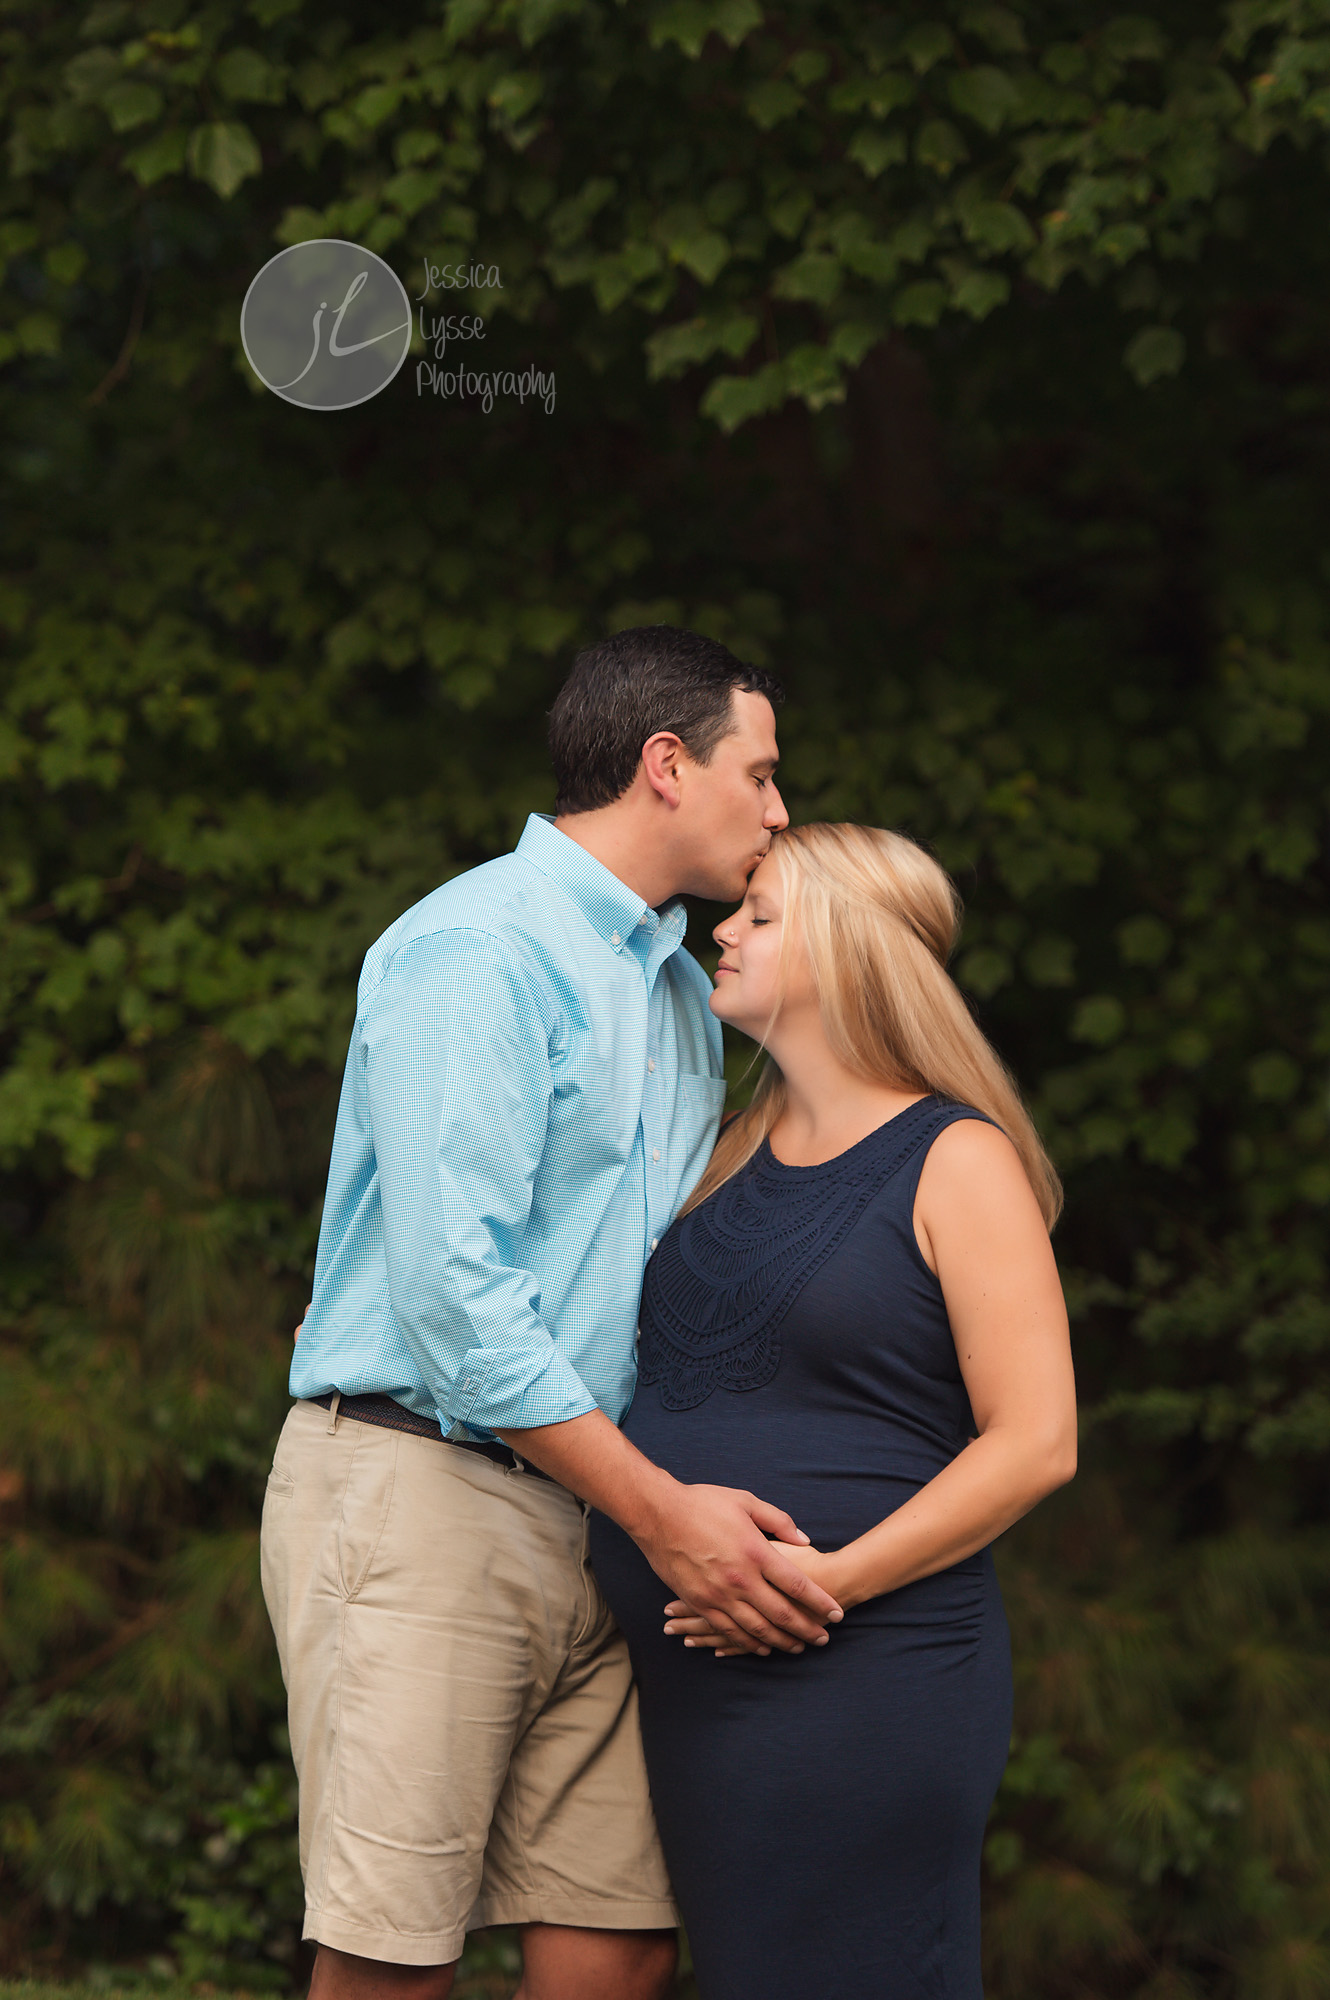 maternity photography kernersvillenc